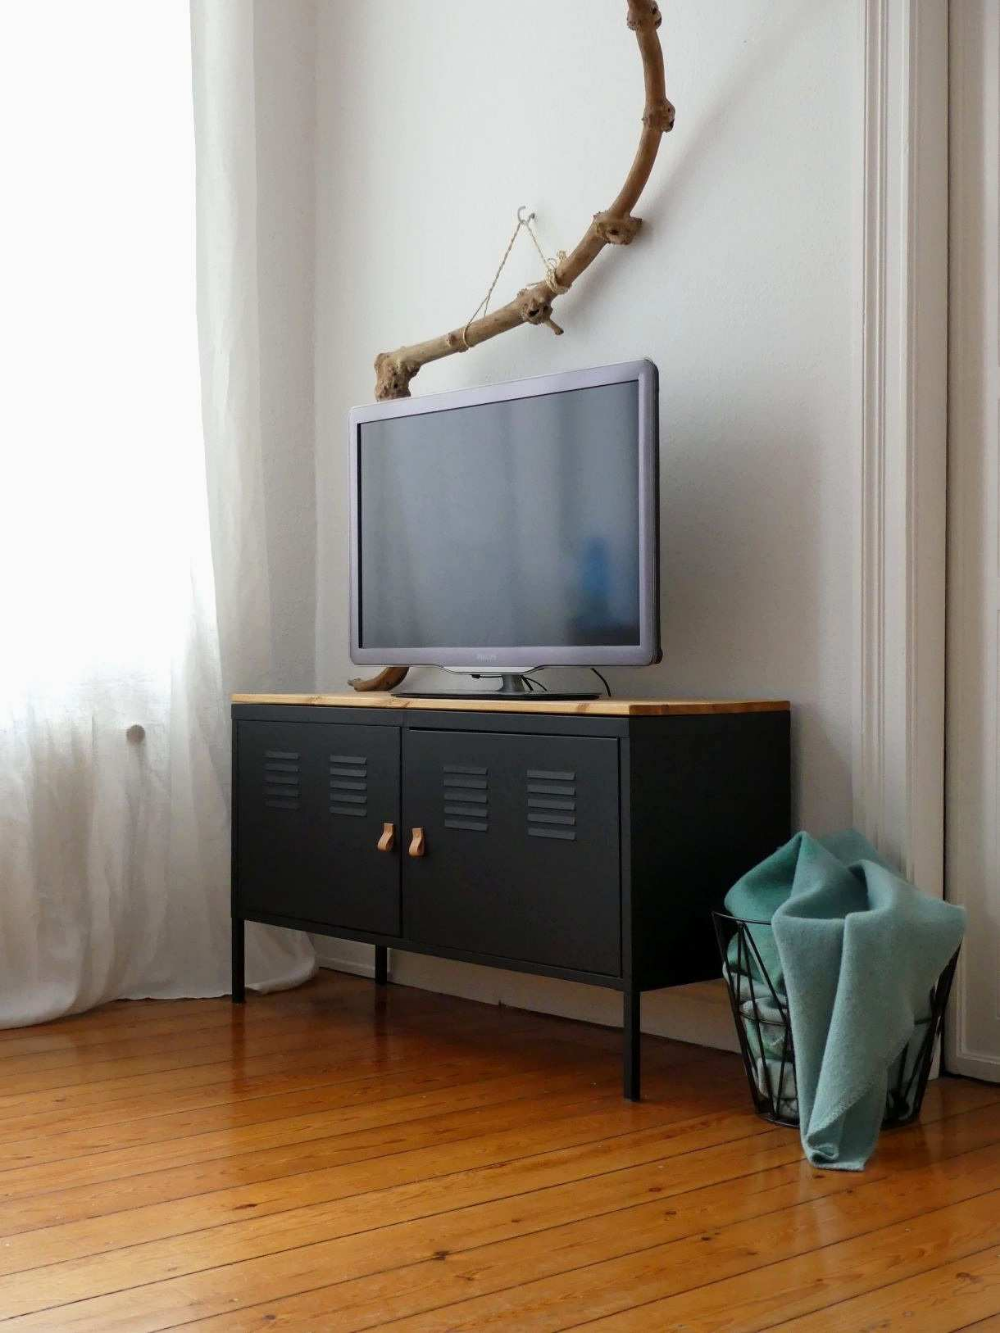 Ikea Ps Meuble Tv Black Painted Ikea Ps Hack Paint Glossy Black With Wood Idees Fraiches De Meubles De Ma Mobilier De Salon Meuble Metal Ikea Diy Meuble Ikea